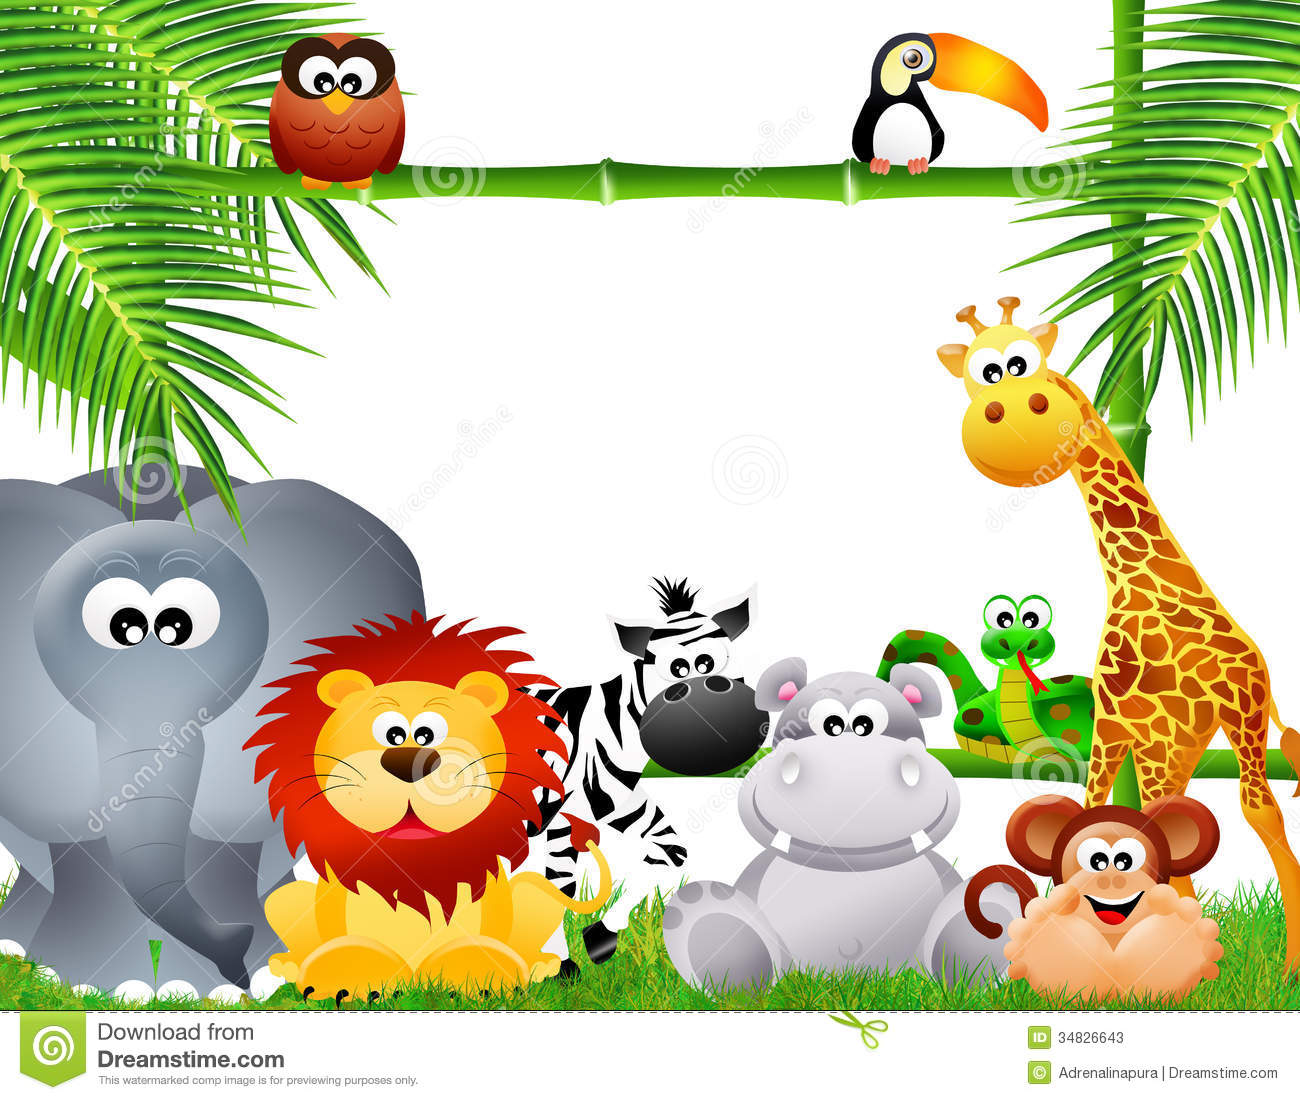 Wild Animal Or Zoo Animal Group With Nature Elements On White Background:  Zoo Animals Cartoon Stock Photos